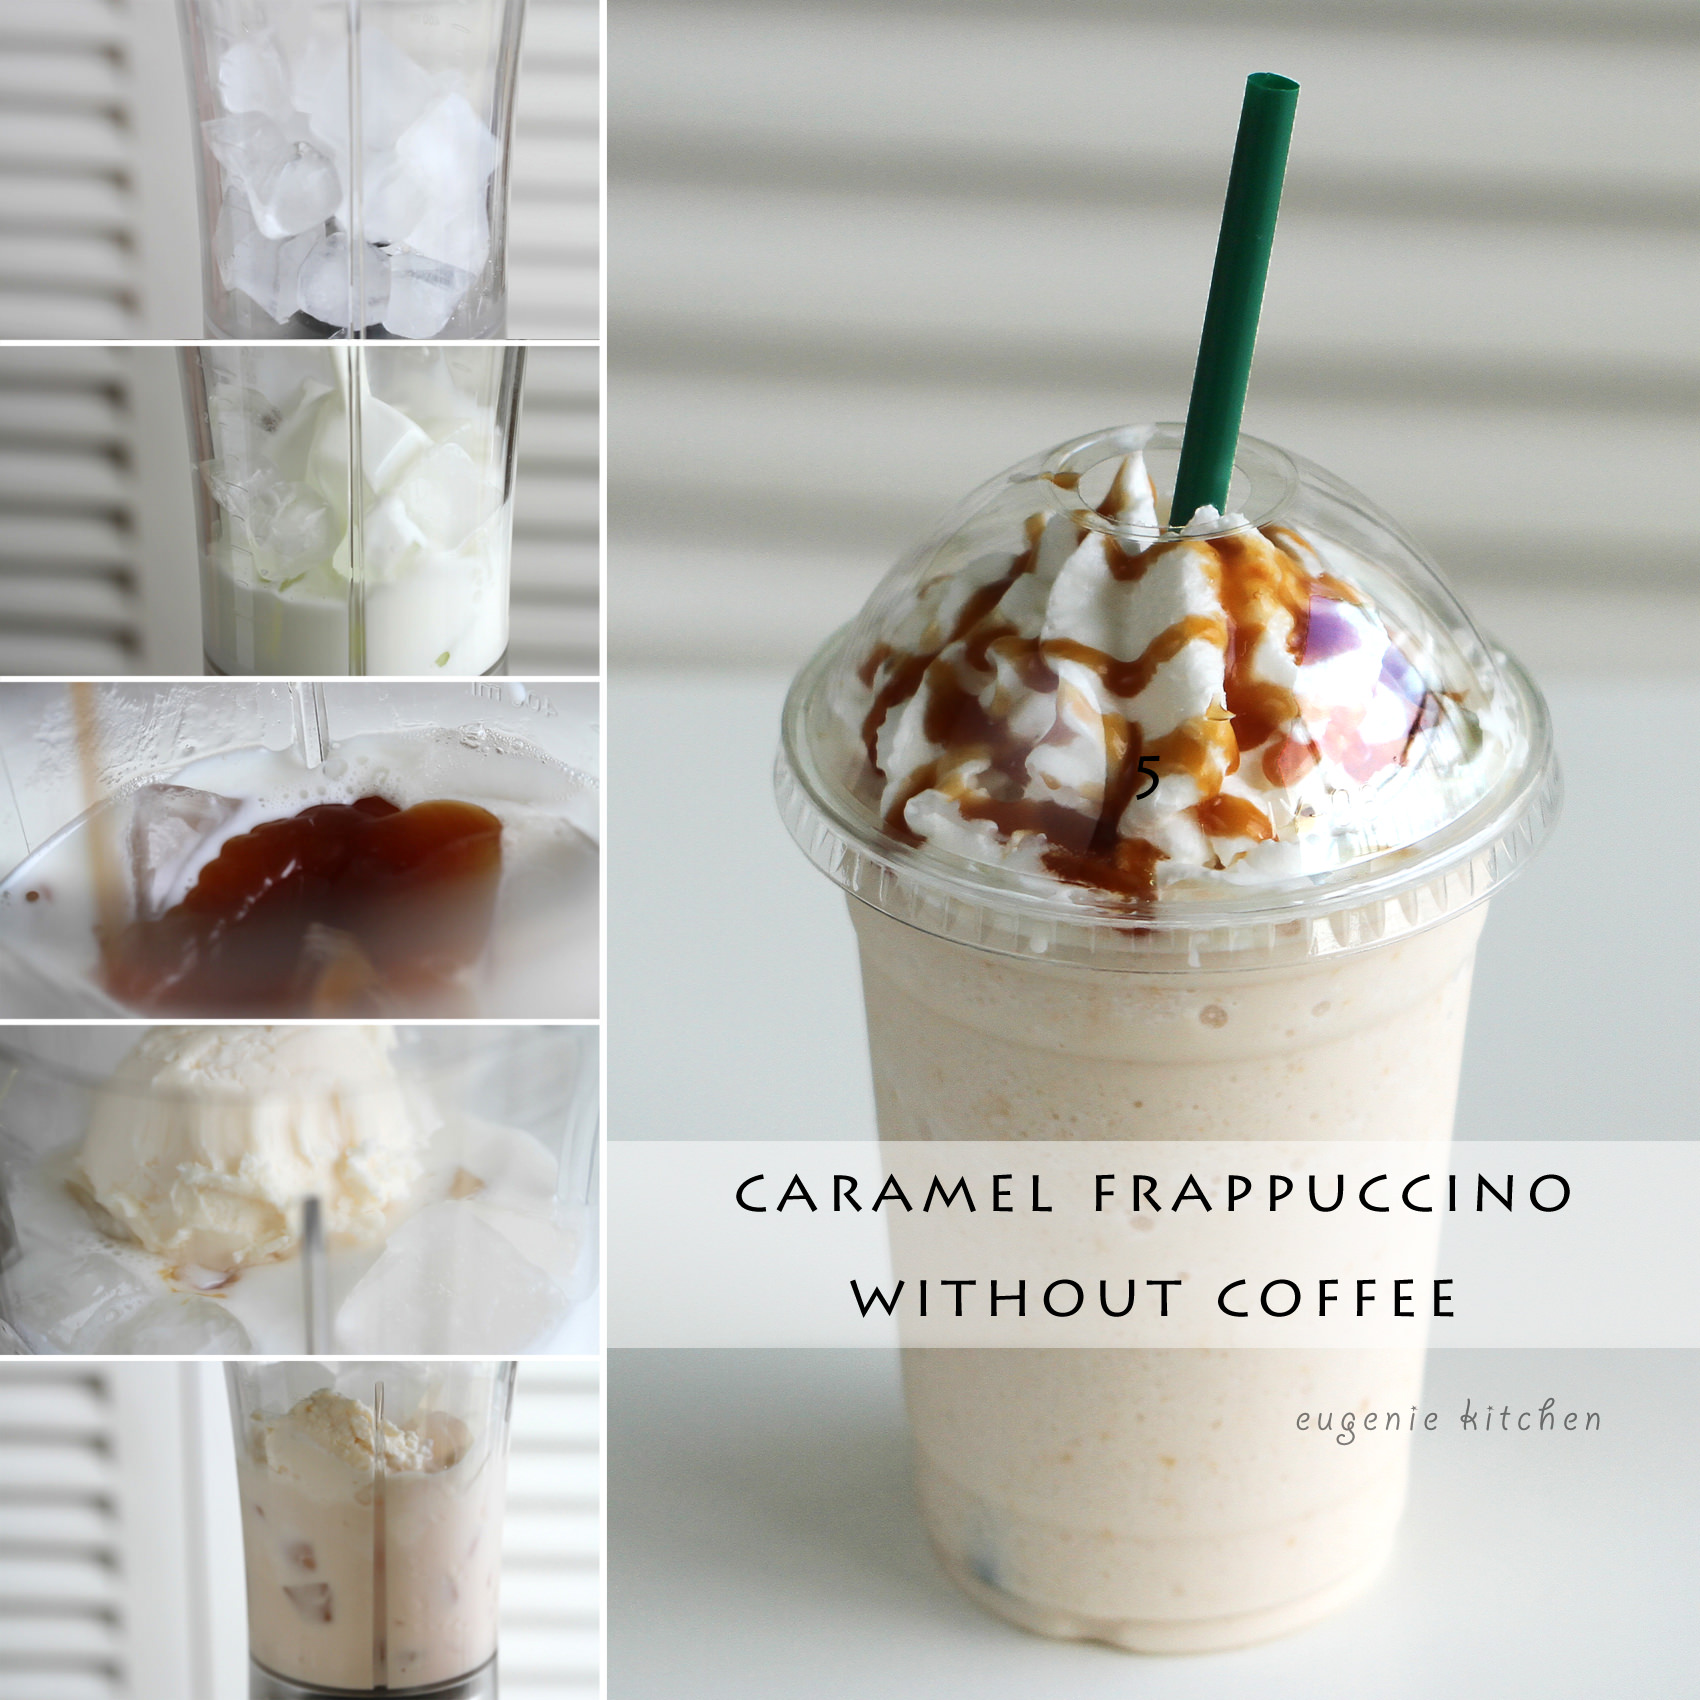 caramel-fappuccino-without-coffee-recipe